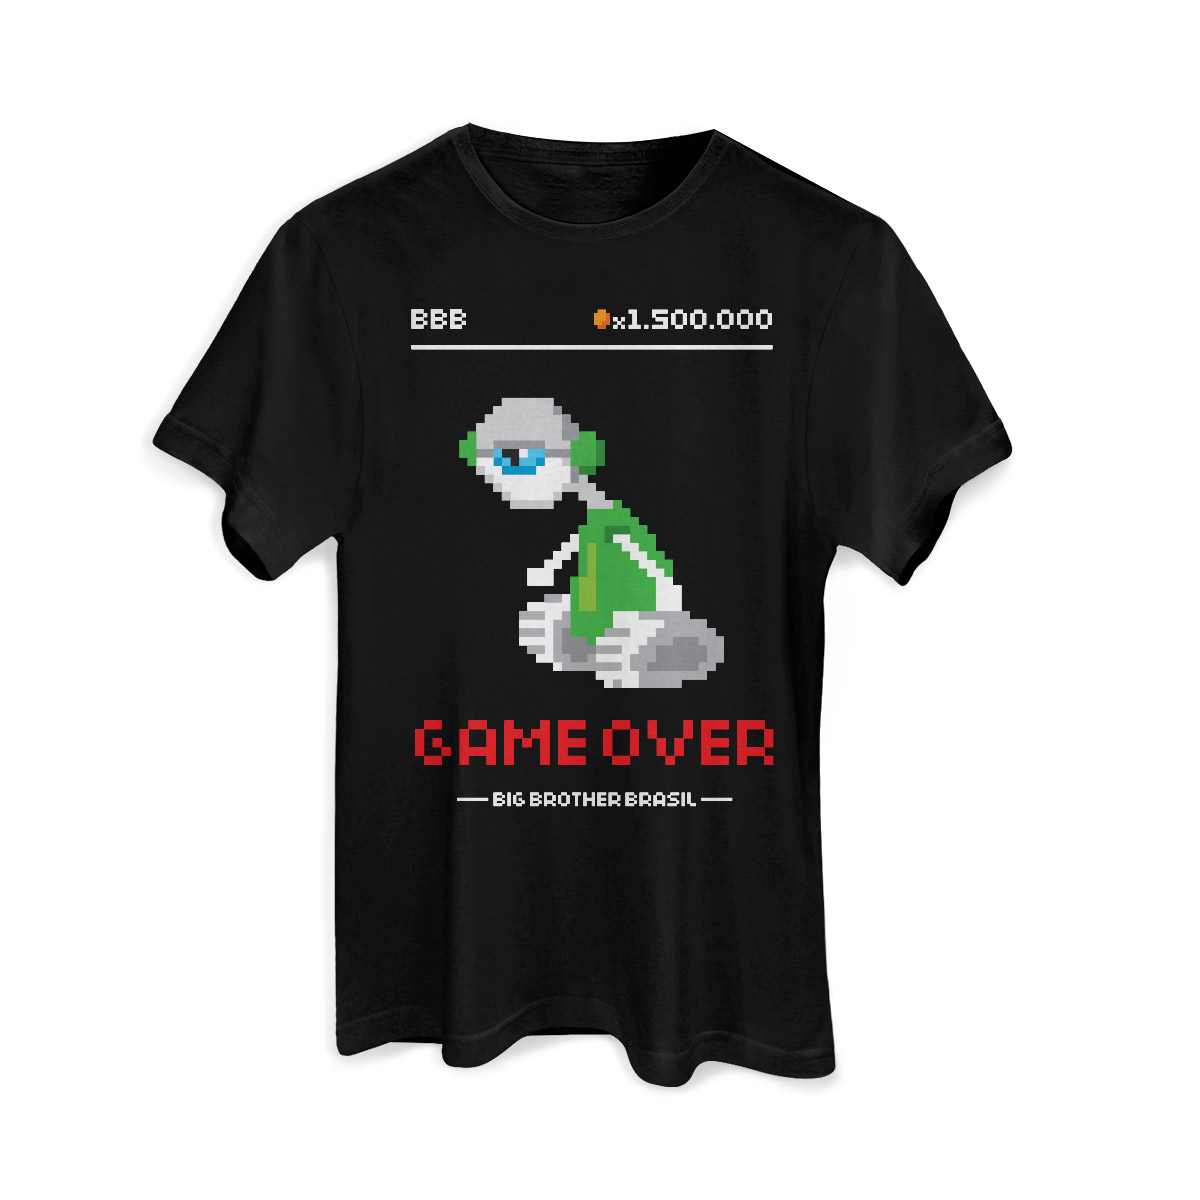 Camiseta Masculina Big Brother Brasil 15 Game Over